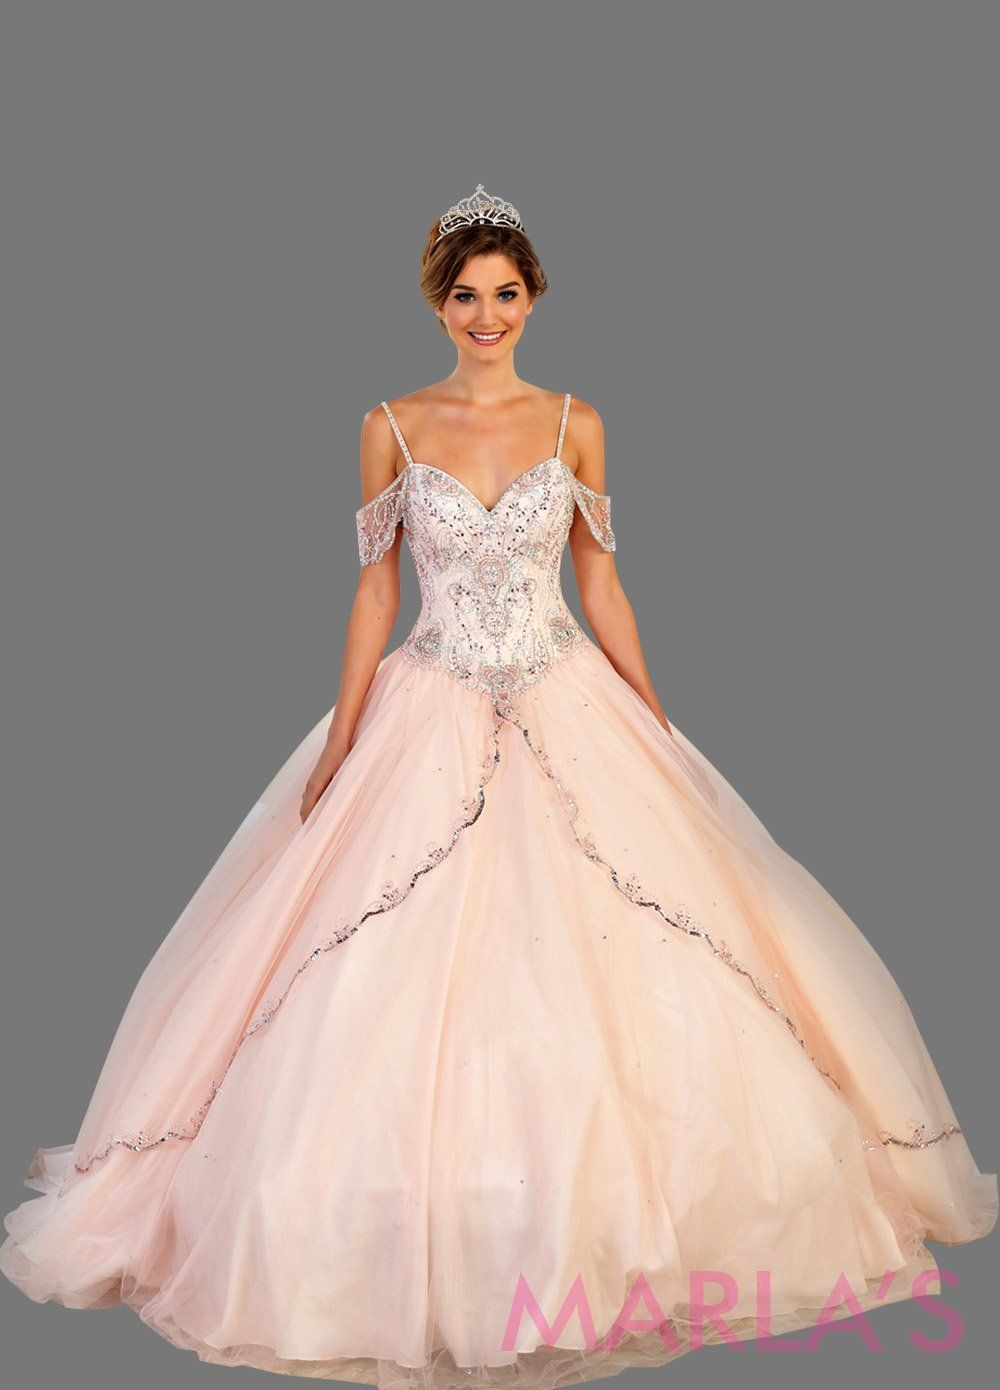 Long off shoulder light pink princess ball gown with rhinestone beading. Perfect for Engagement dress, Quinceanera, Sweet 16, Sweet 15, Debut, and blush pink, Wedding Reception Dress. Available in plus sizes